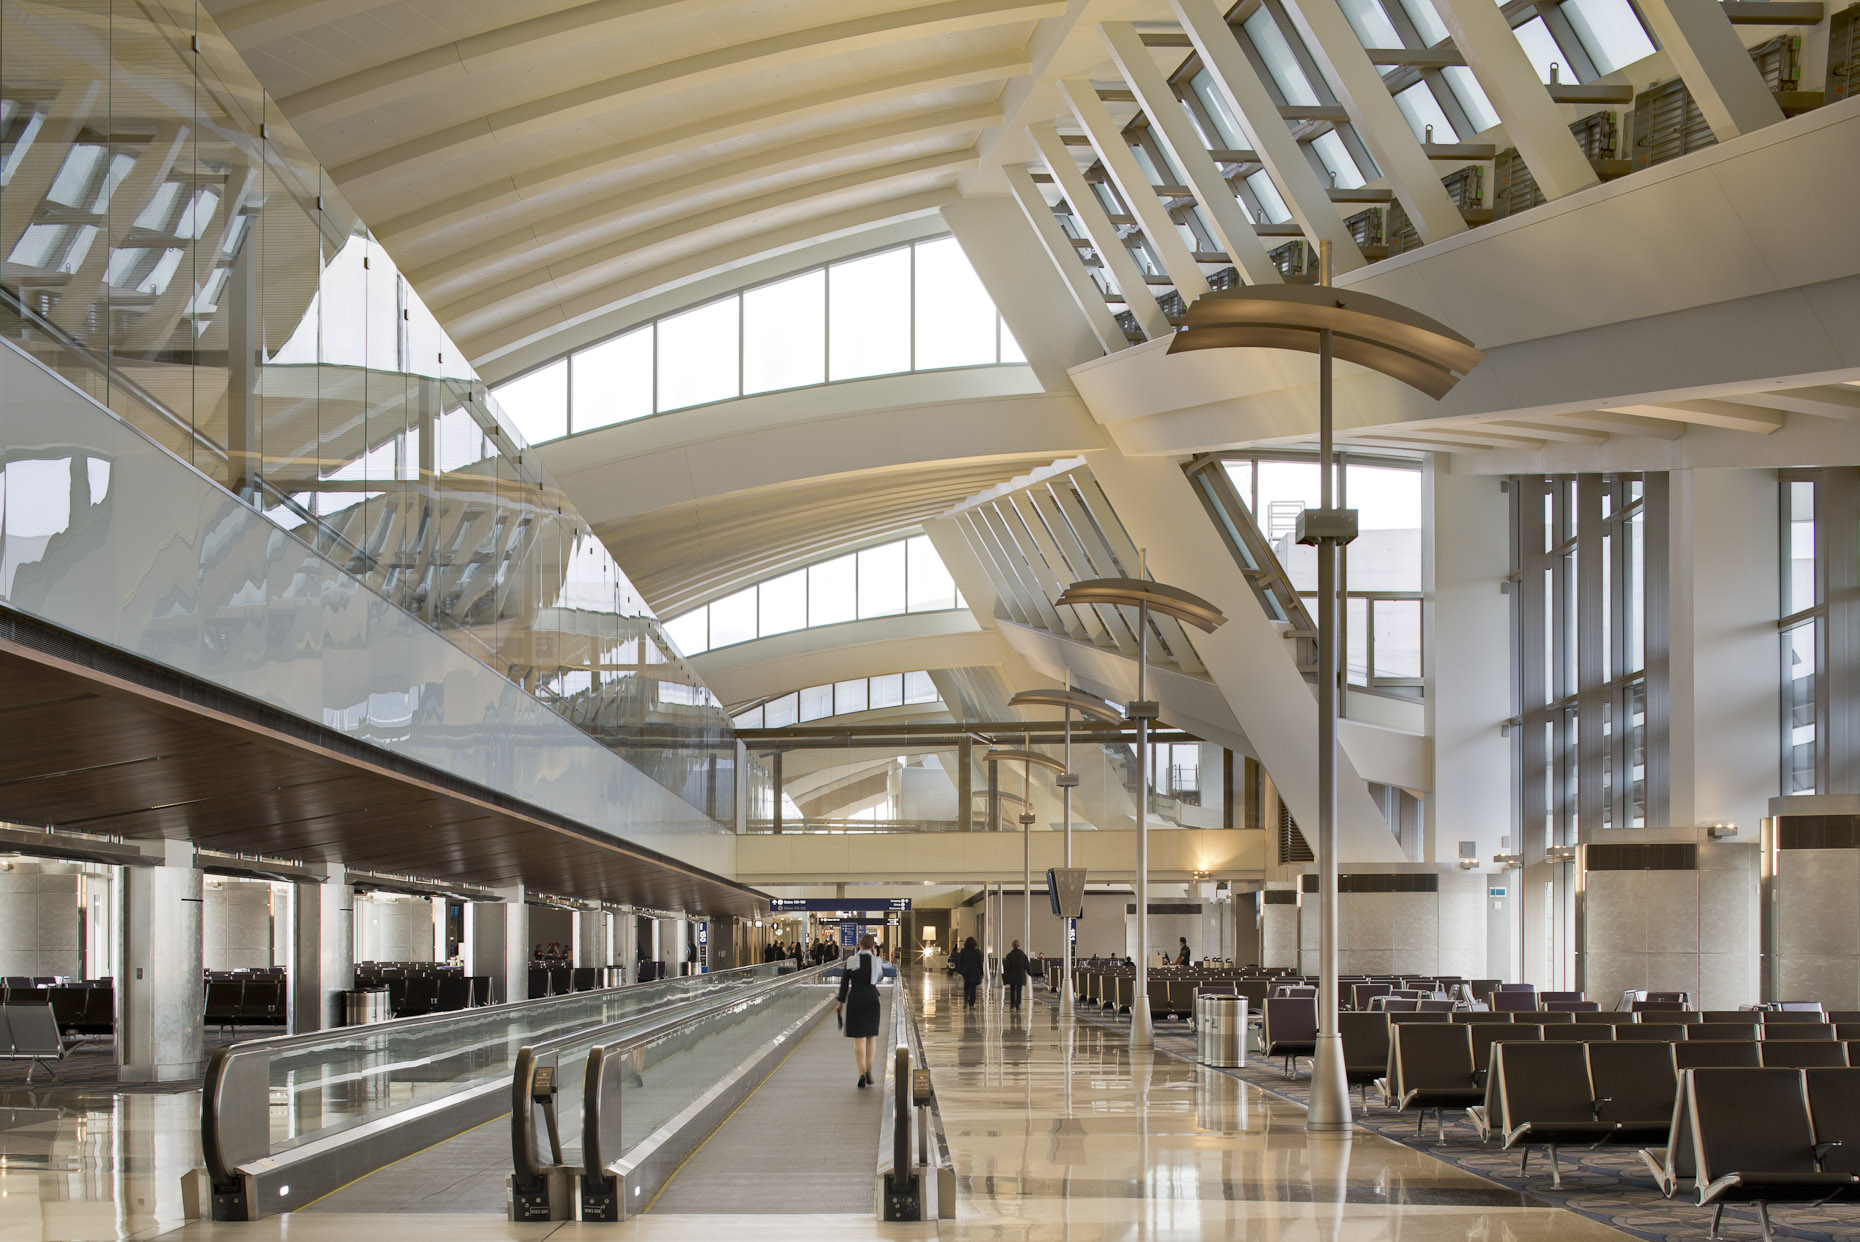 Tom Bradley International Terminal at LAX by HNTB